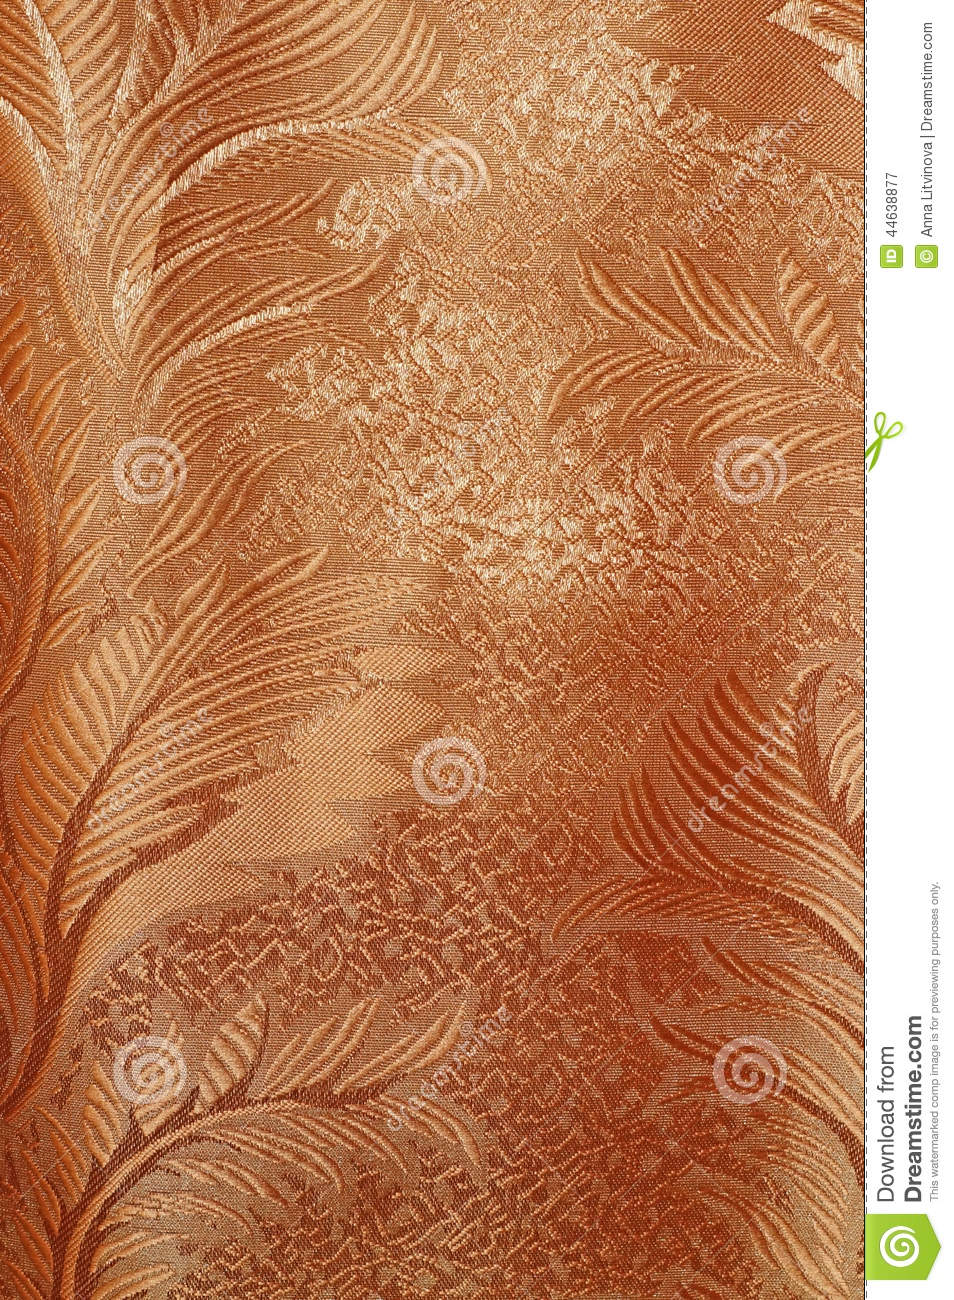 Curtains texture - Texture Of Red And Beige Satin Patterned Curtains With Folds